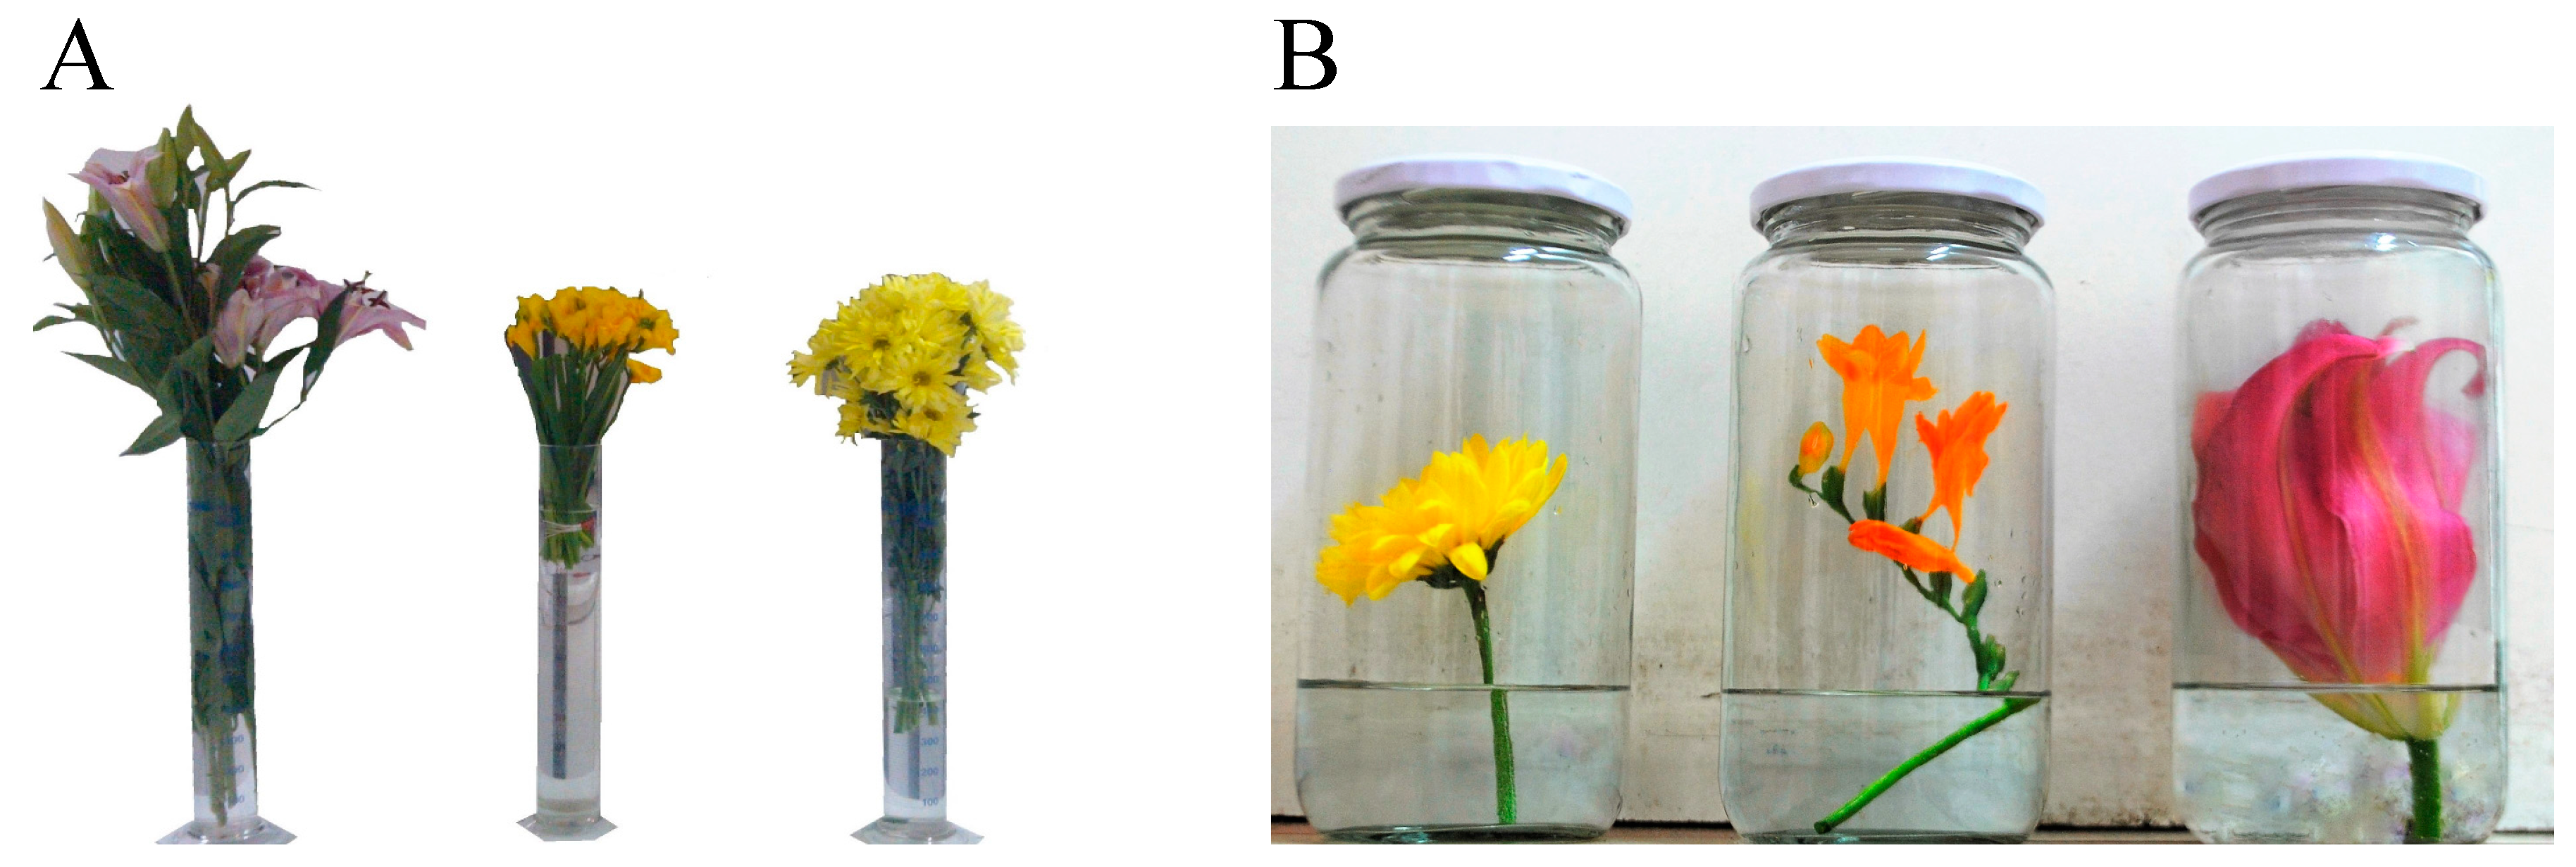 Agronomy Free Full Text Floral Scent Evaluation Of Three Cut Flowers Through Sensorial And Gas Chromatography Analysis Html